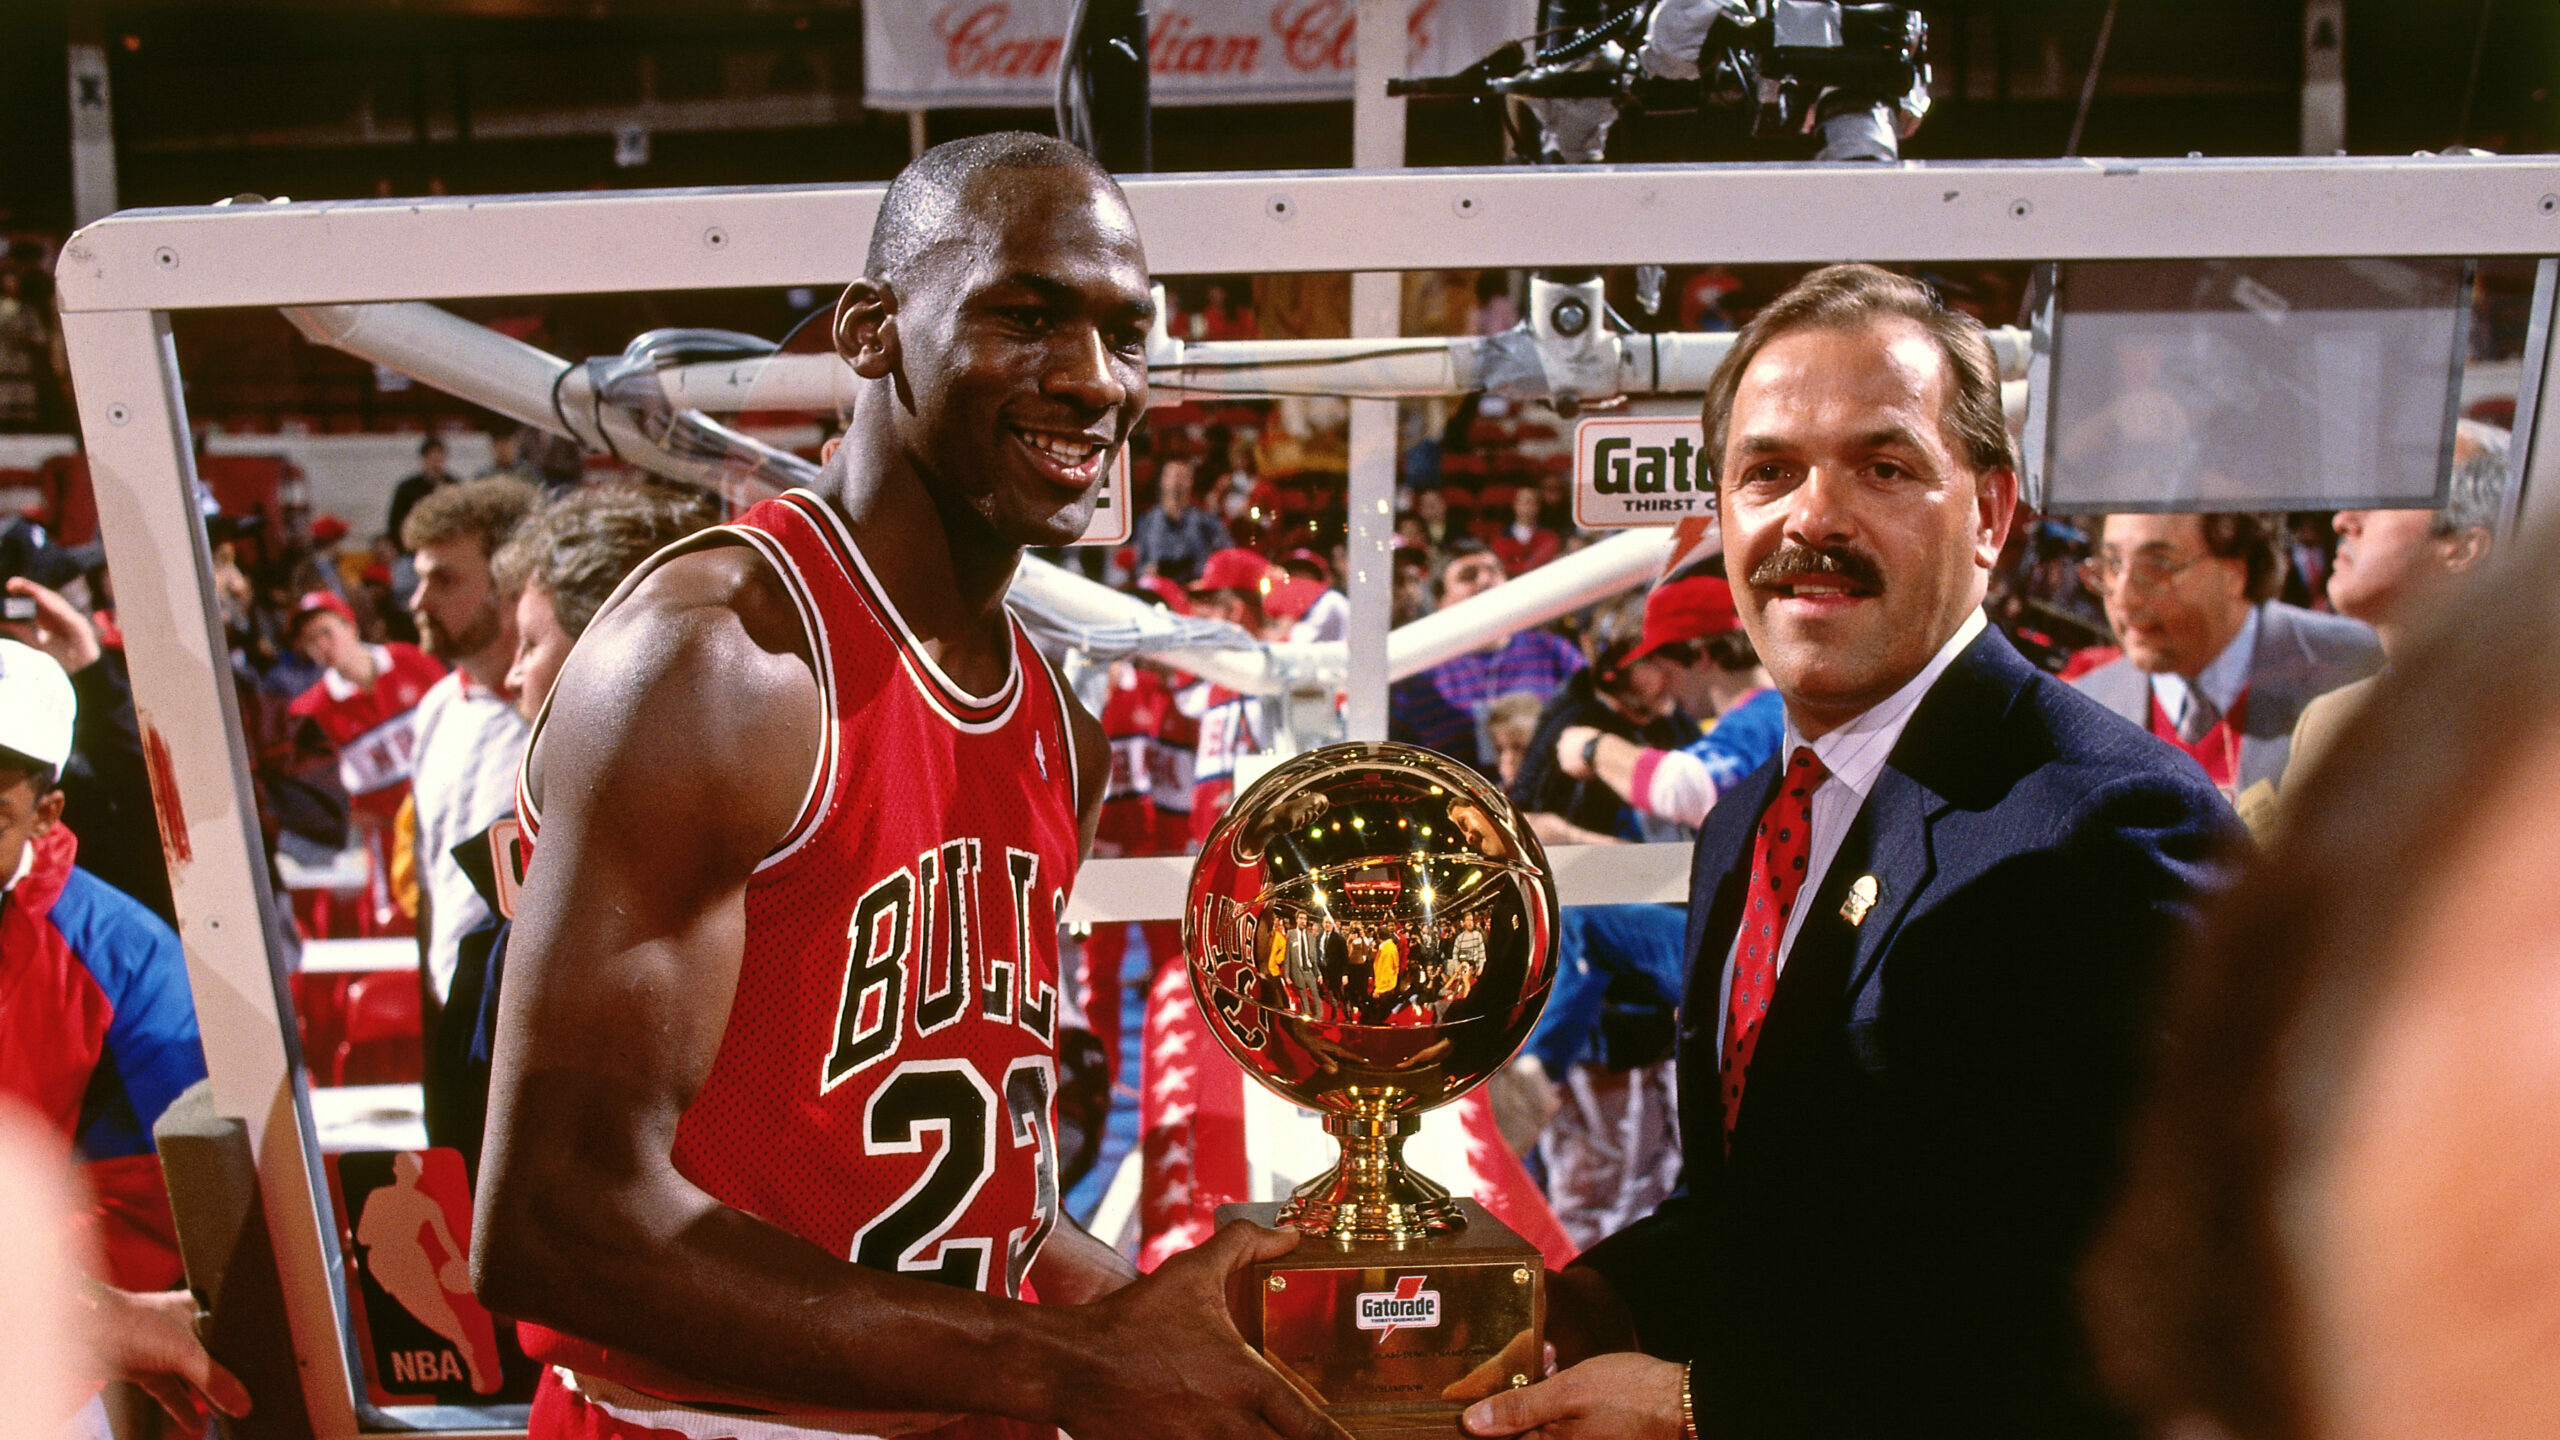 All In: Relive classic All-Star Weekend from 1988